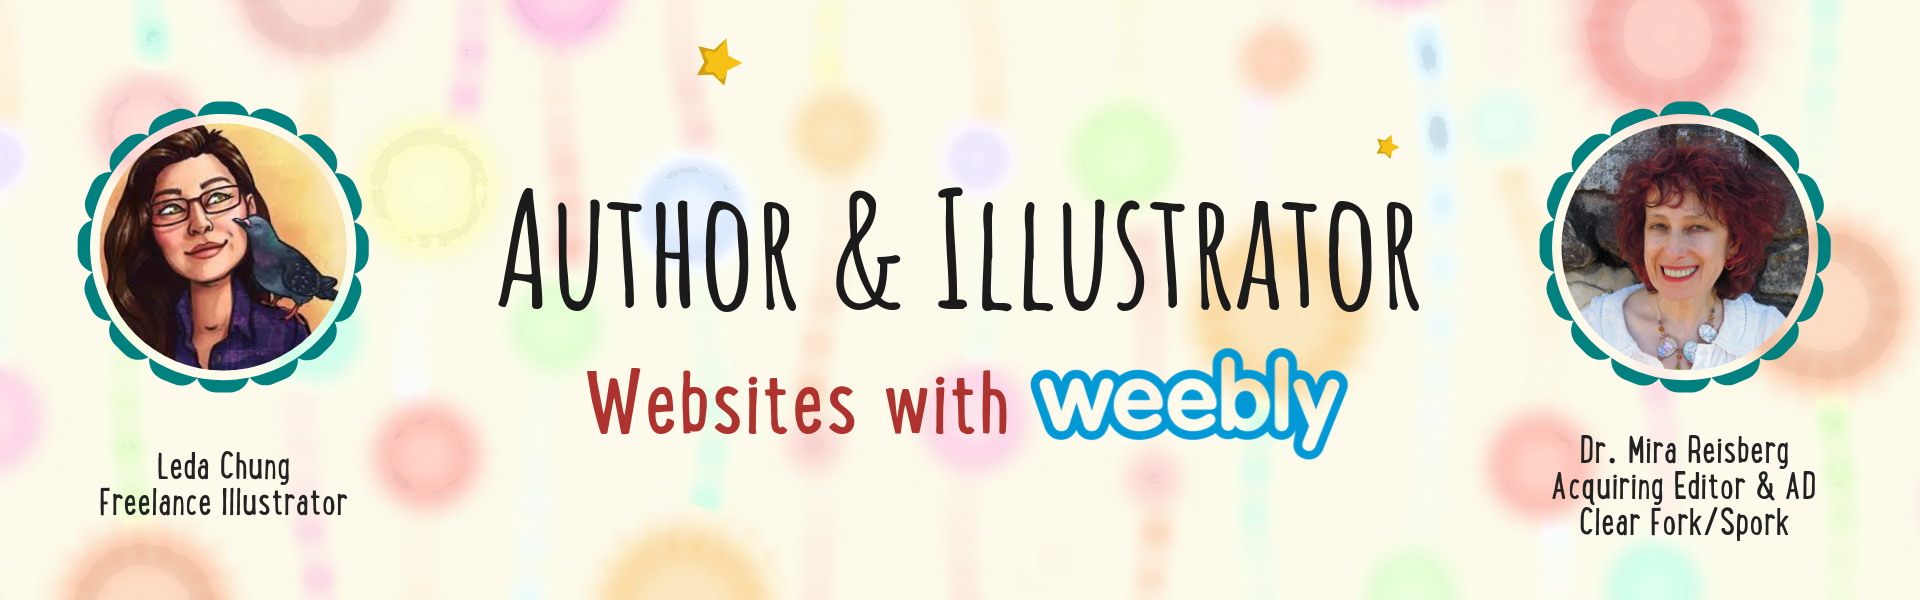 Author & Illustrator Websites with Weebly and Leda Chung at the Children's Book Academy